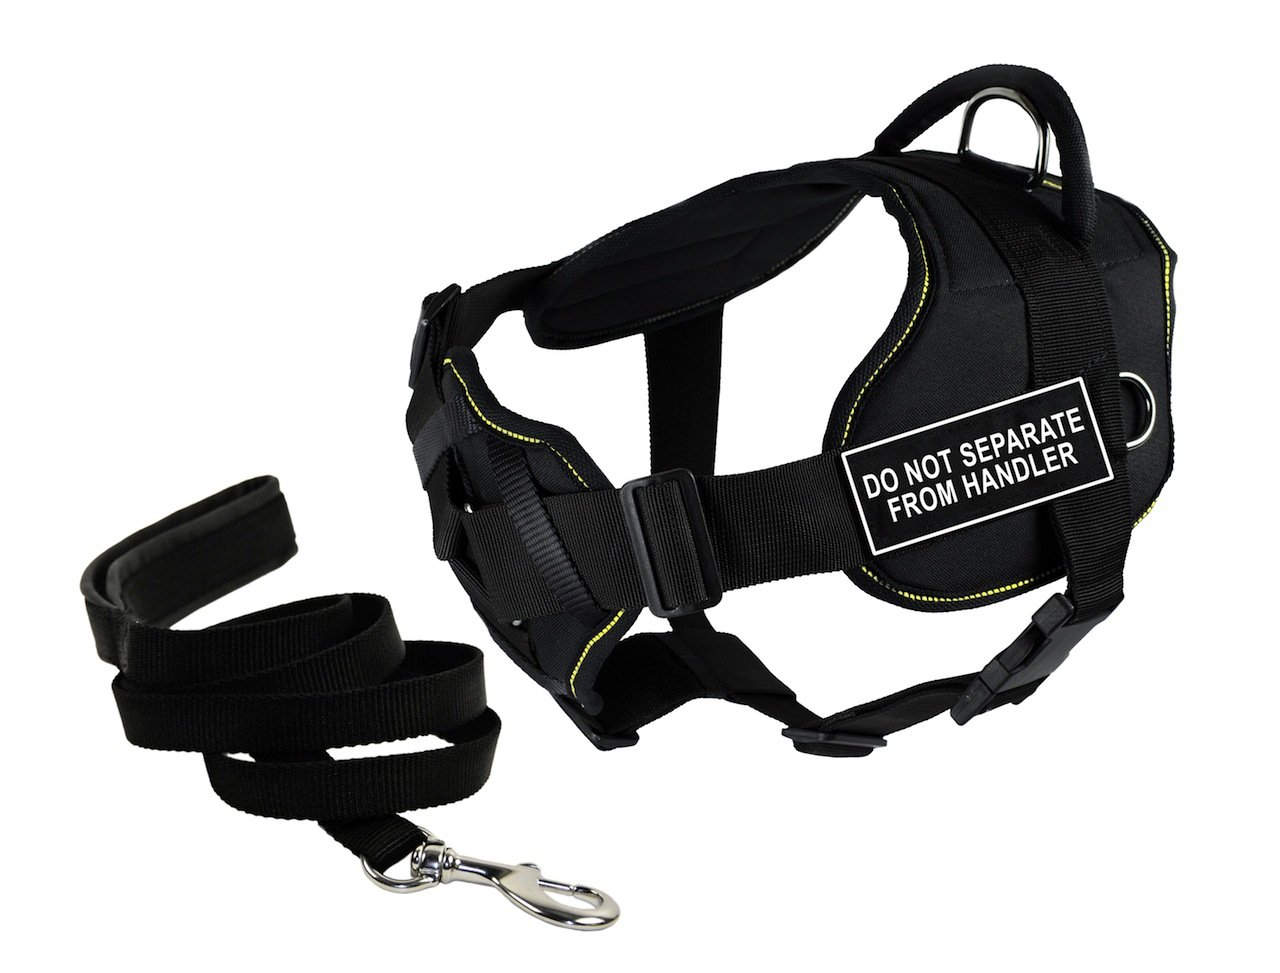 Dean & Tyler's DT Fun Chest Support DO NOT Separate from Handler  Harness, Small, with 6 ft Padded Puppy Leash.